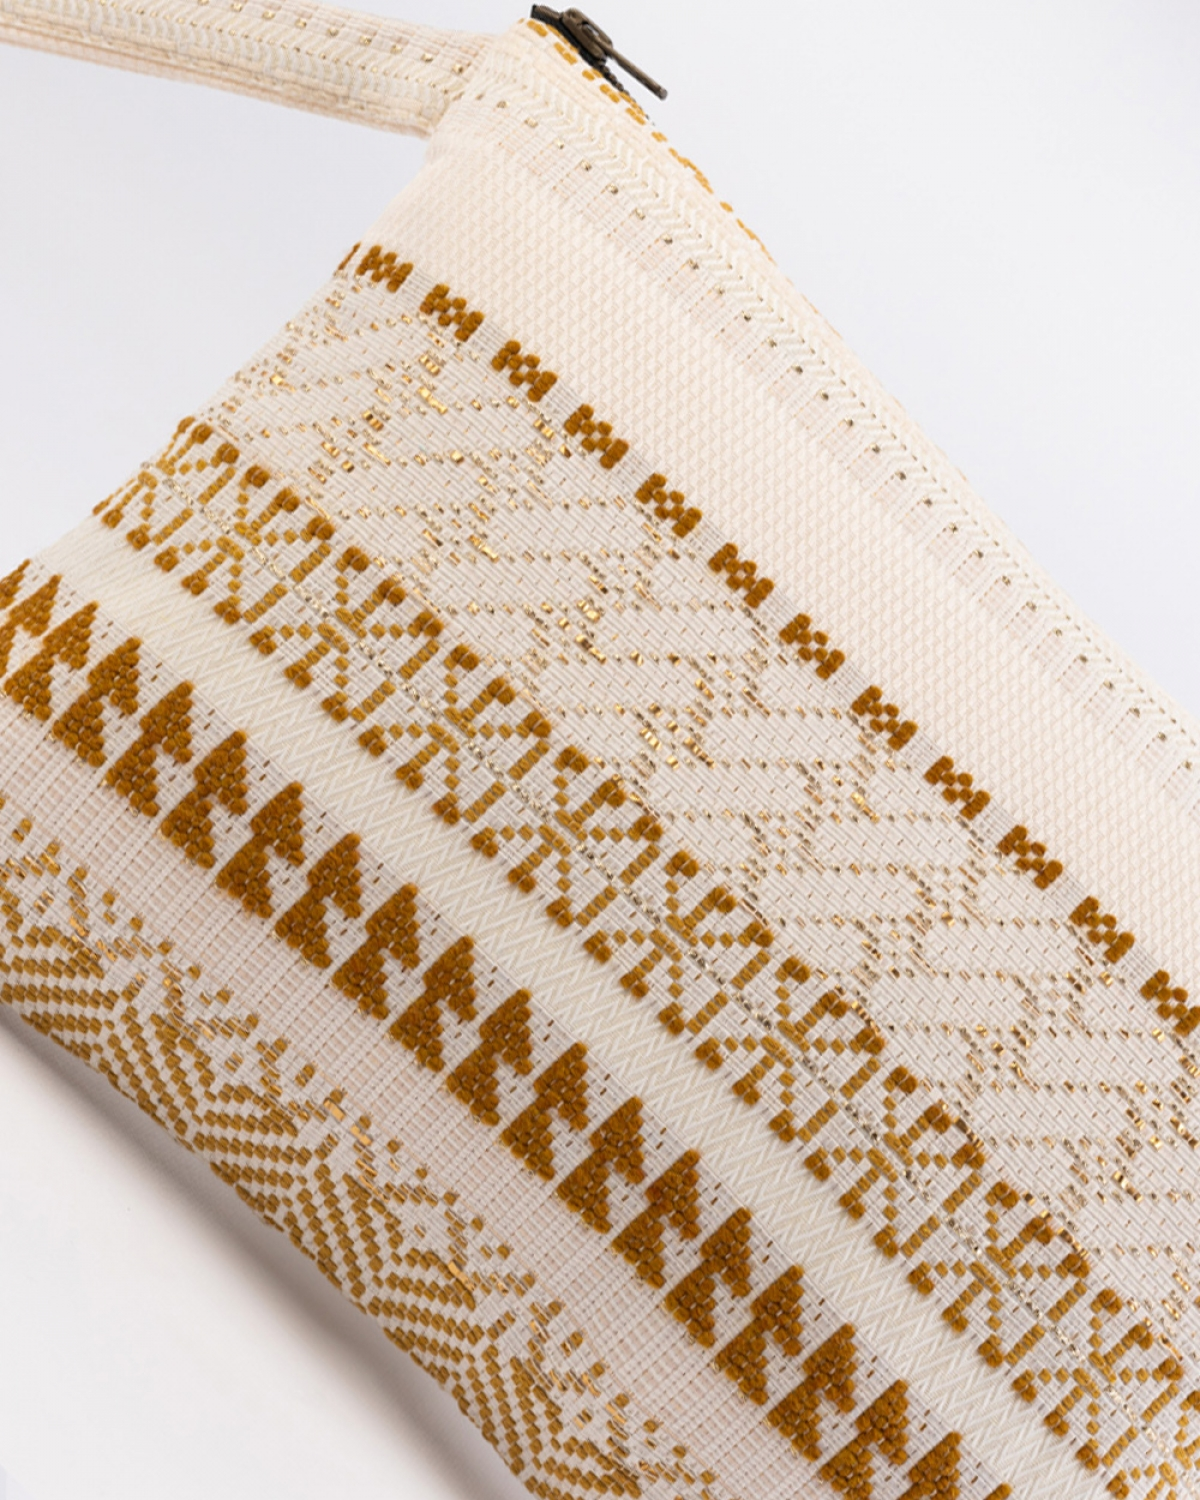 Woven Craft Medium Clutch